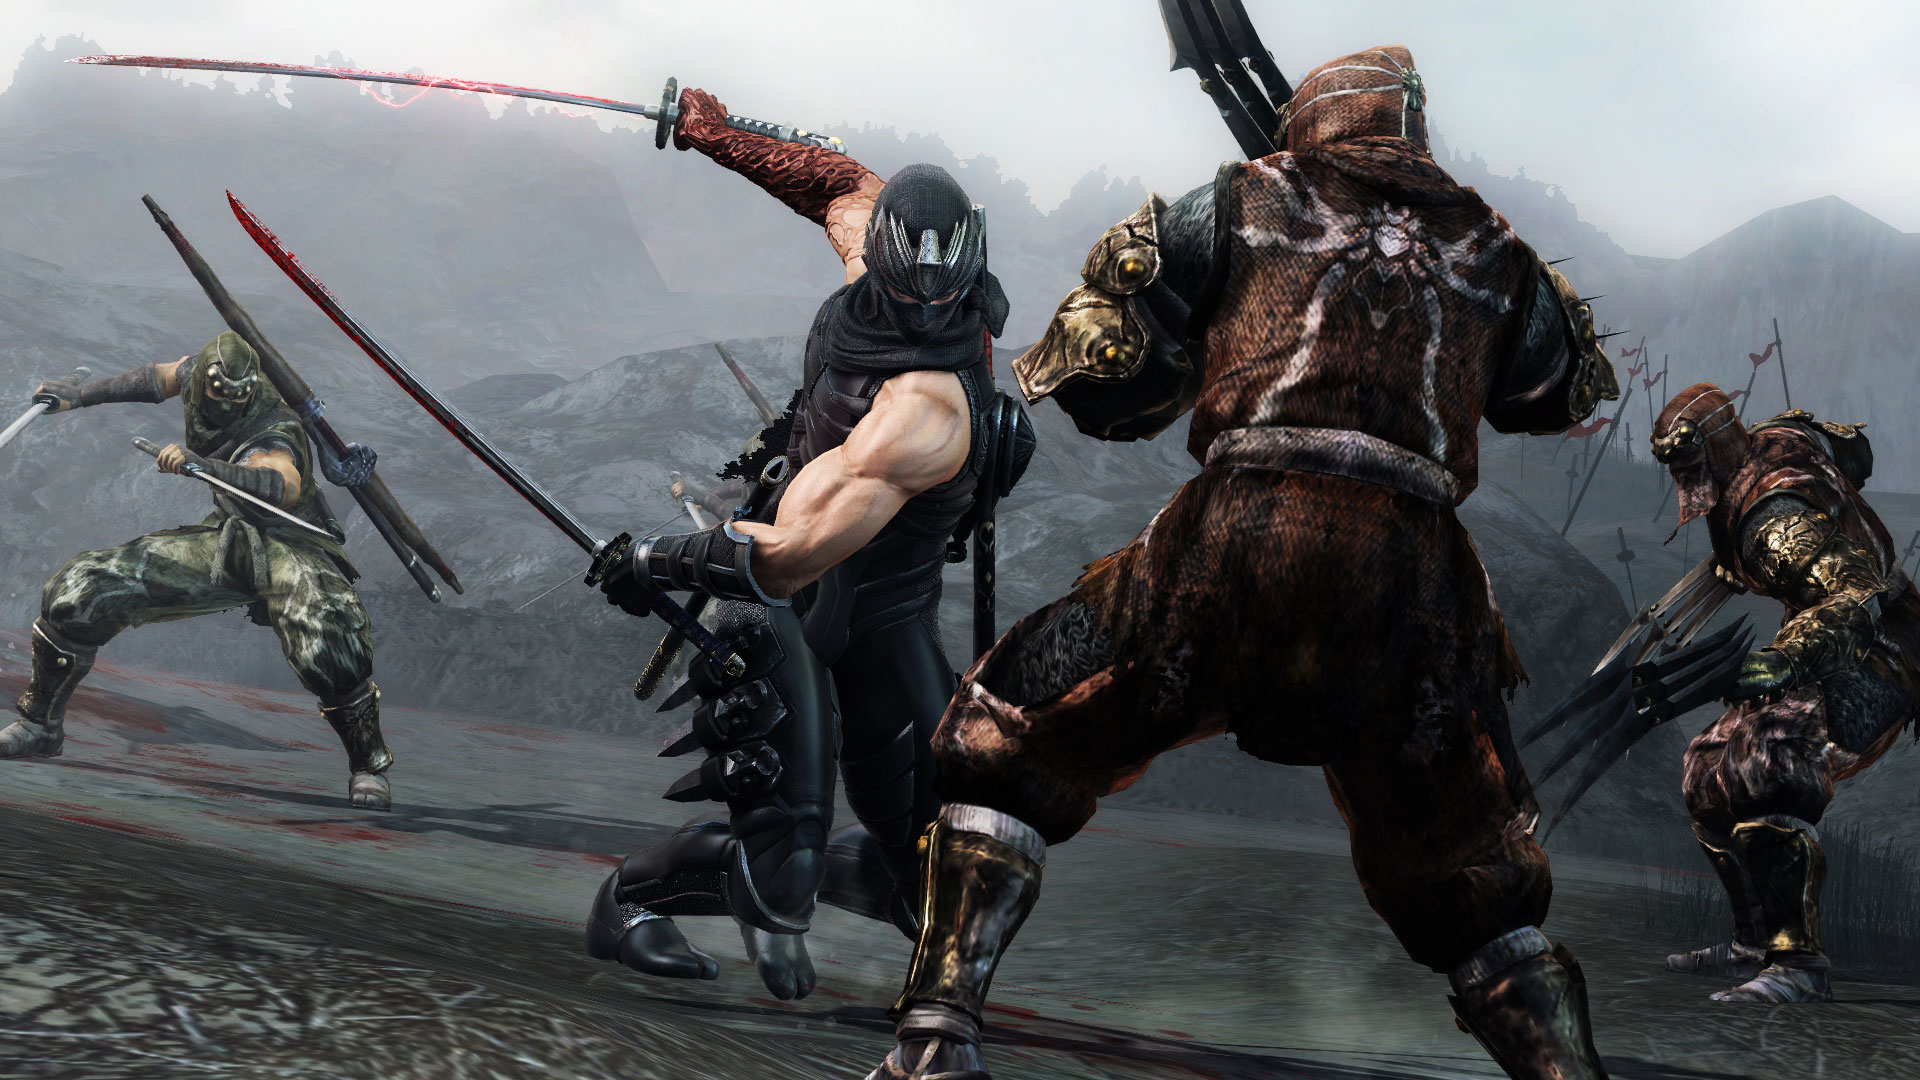 Ninja Gaiden 3 And Trials Evolution Are Now Backward Compatible On